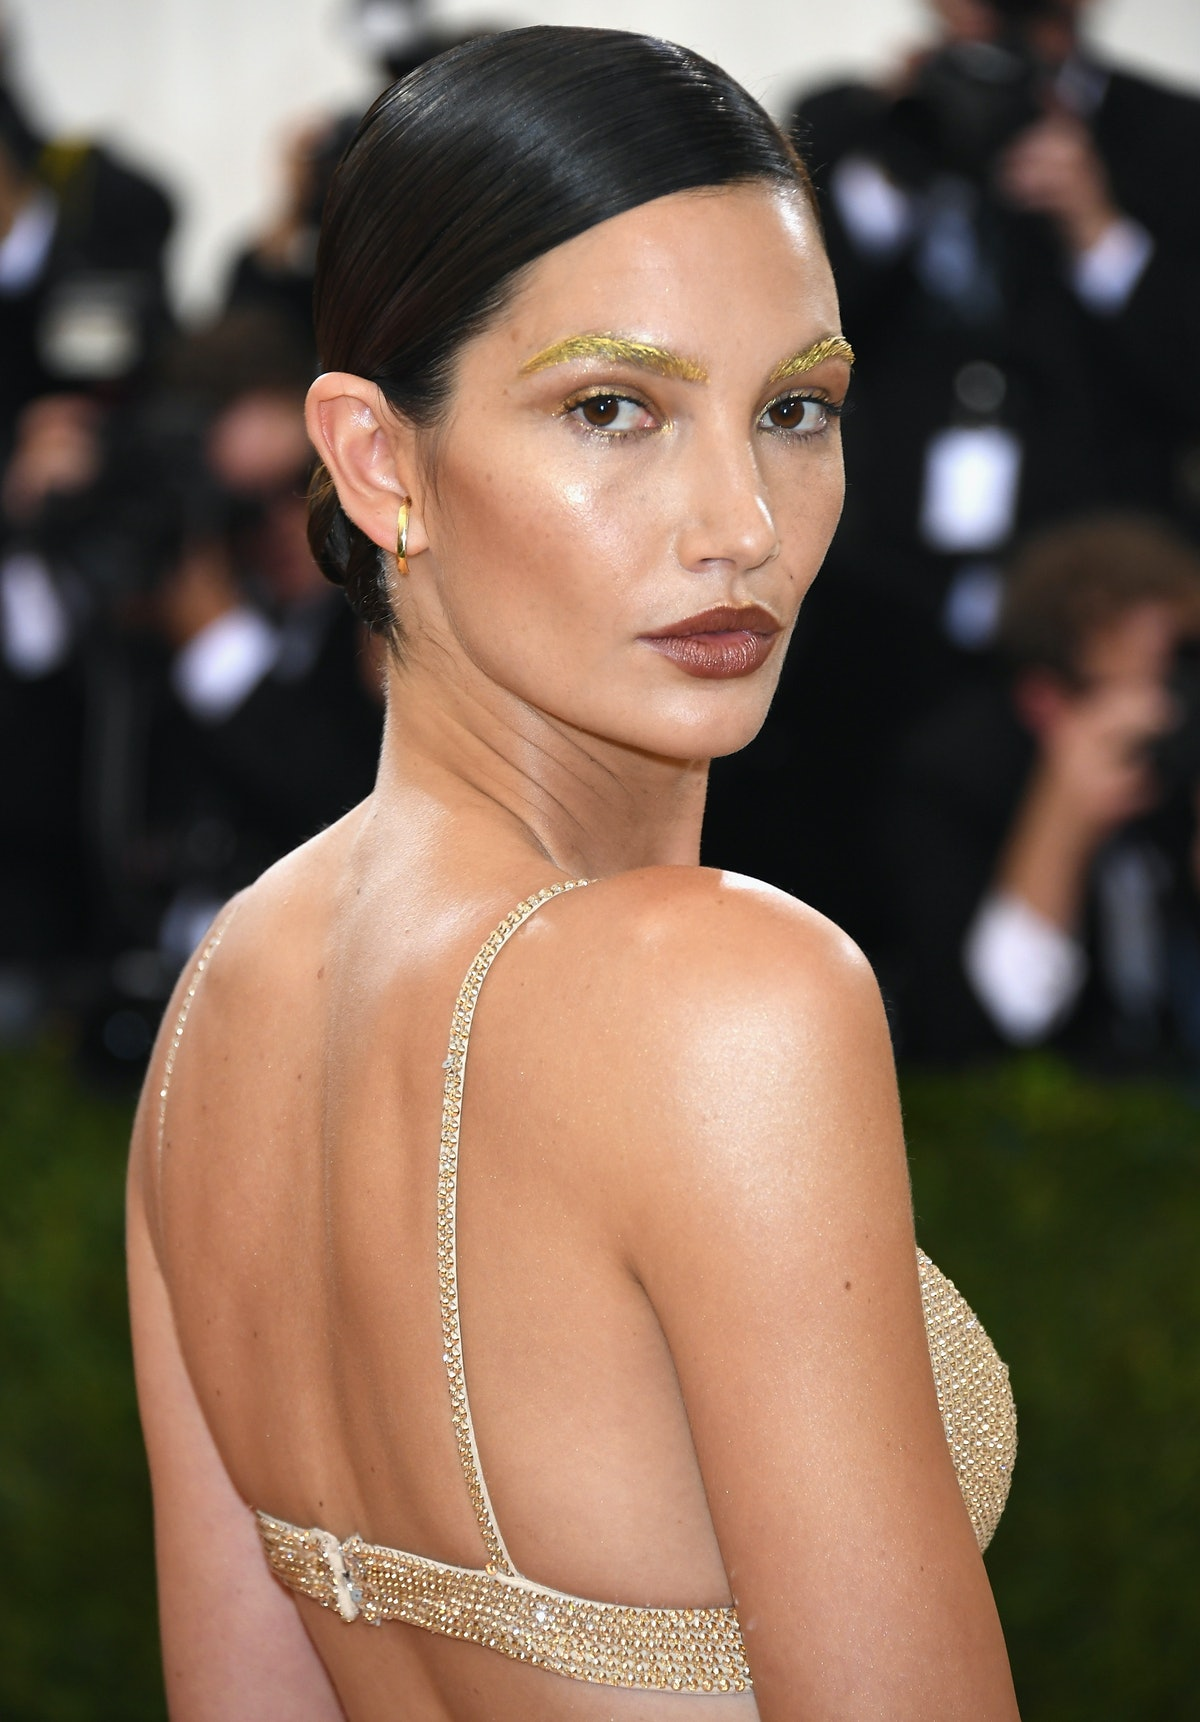 Lily Aldridge's daring look at the 2016 Met Gala perfectly complemented her gilded gown and sleek updo.